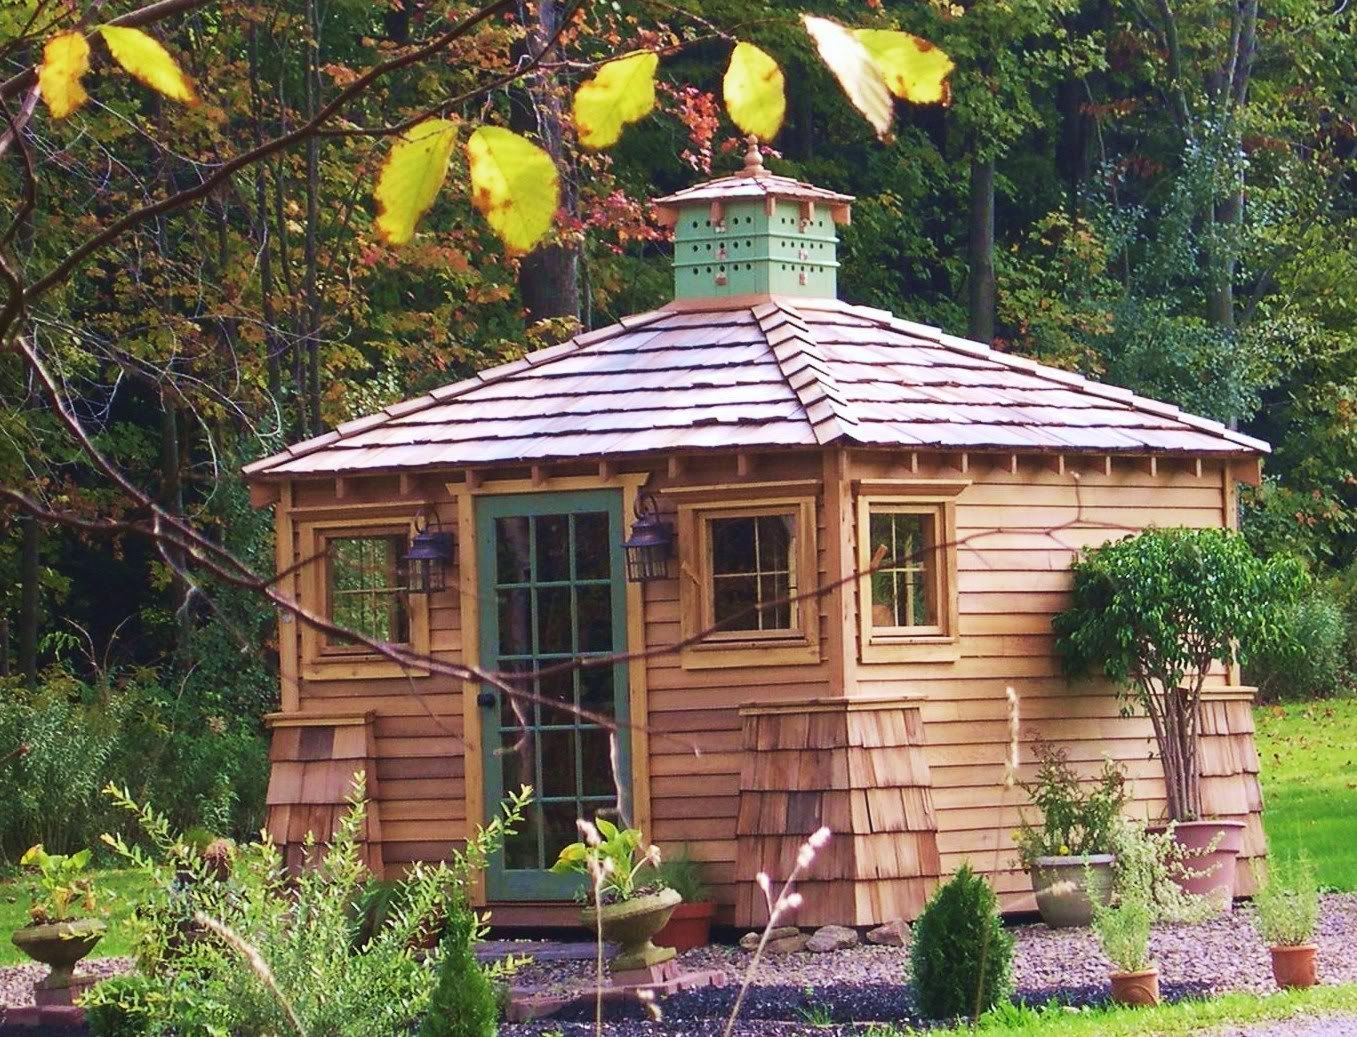 50 Creative Garden Sheds Photo Gallery Building A Shed Shed Design Shed Building Plans